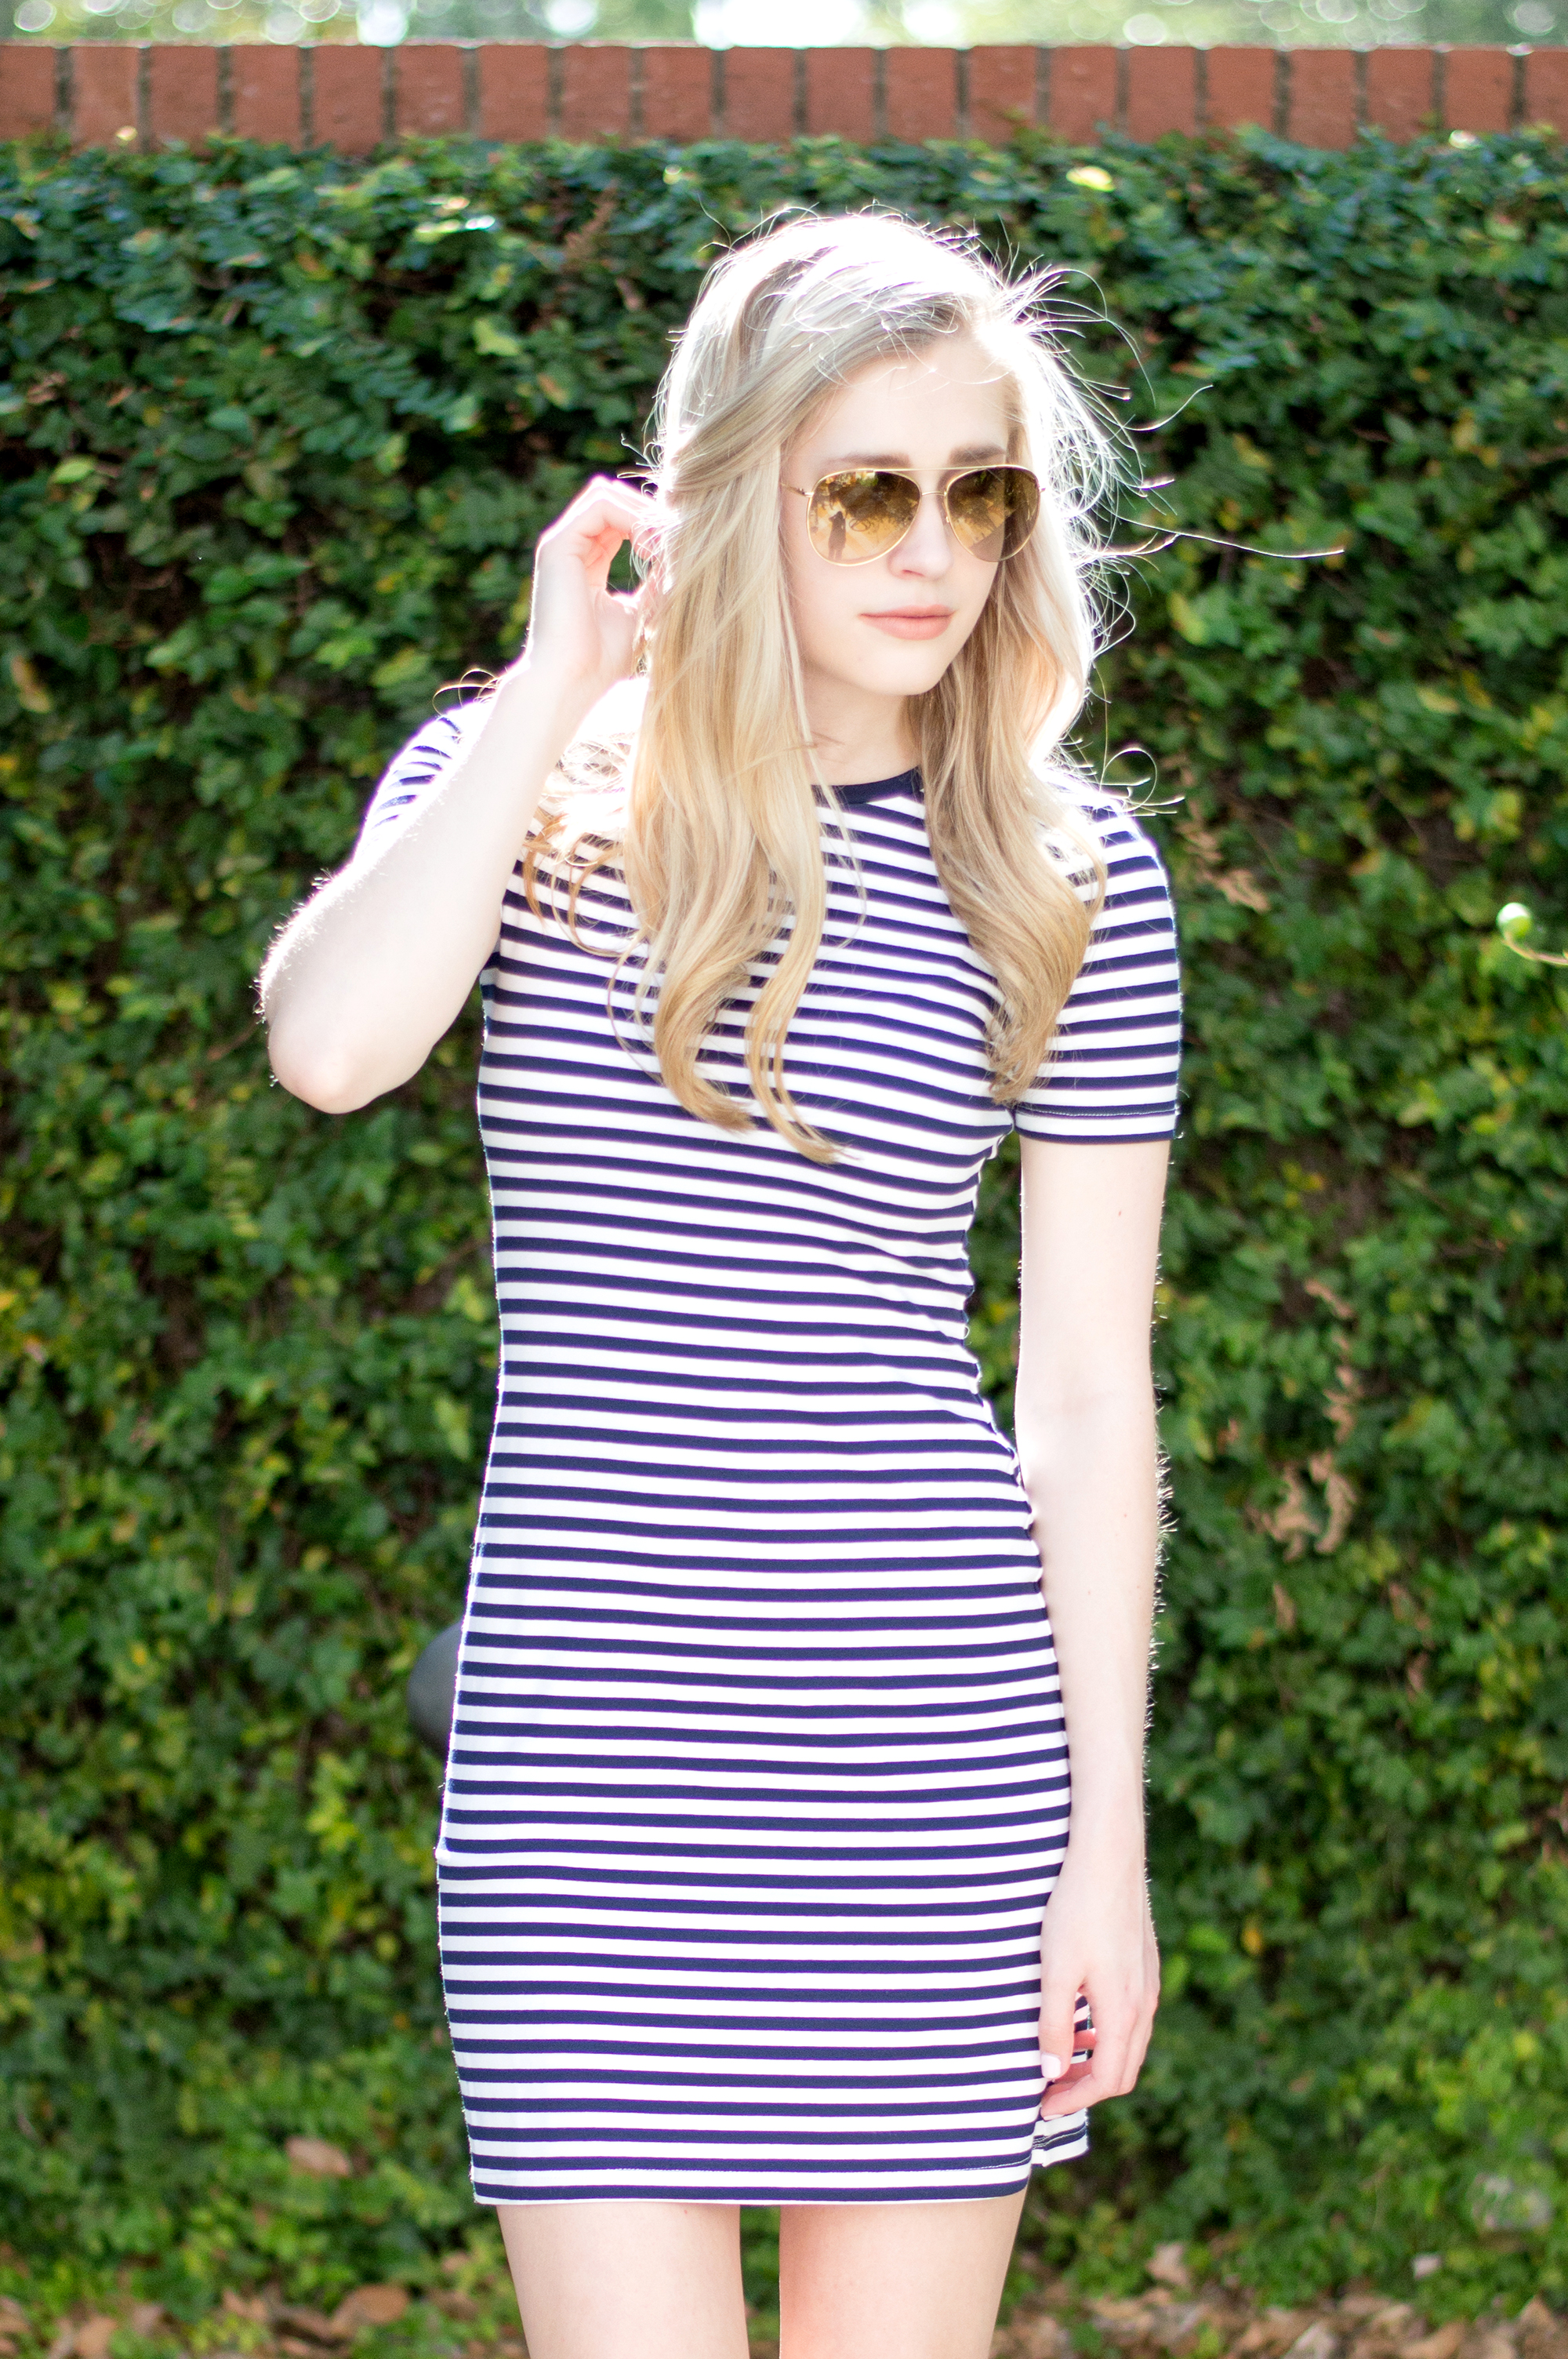 styelled-blog-elle-elisabeth-jane-hudson-stripes-striped-dress-adidas-superstar-efitz-bluetooth-headphones-apple-macbook-gold-burberry-blogger-06